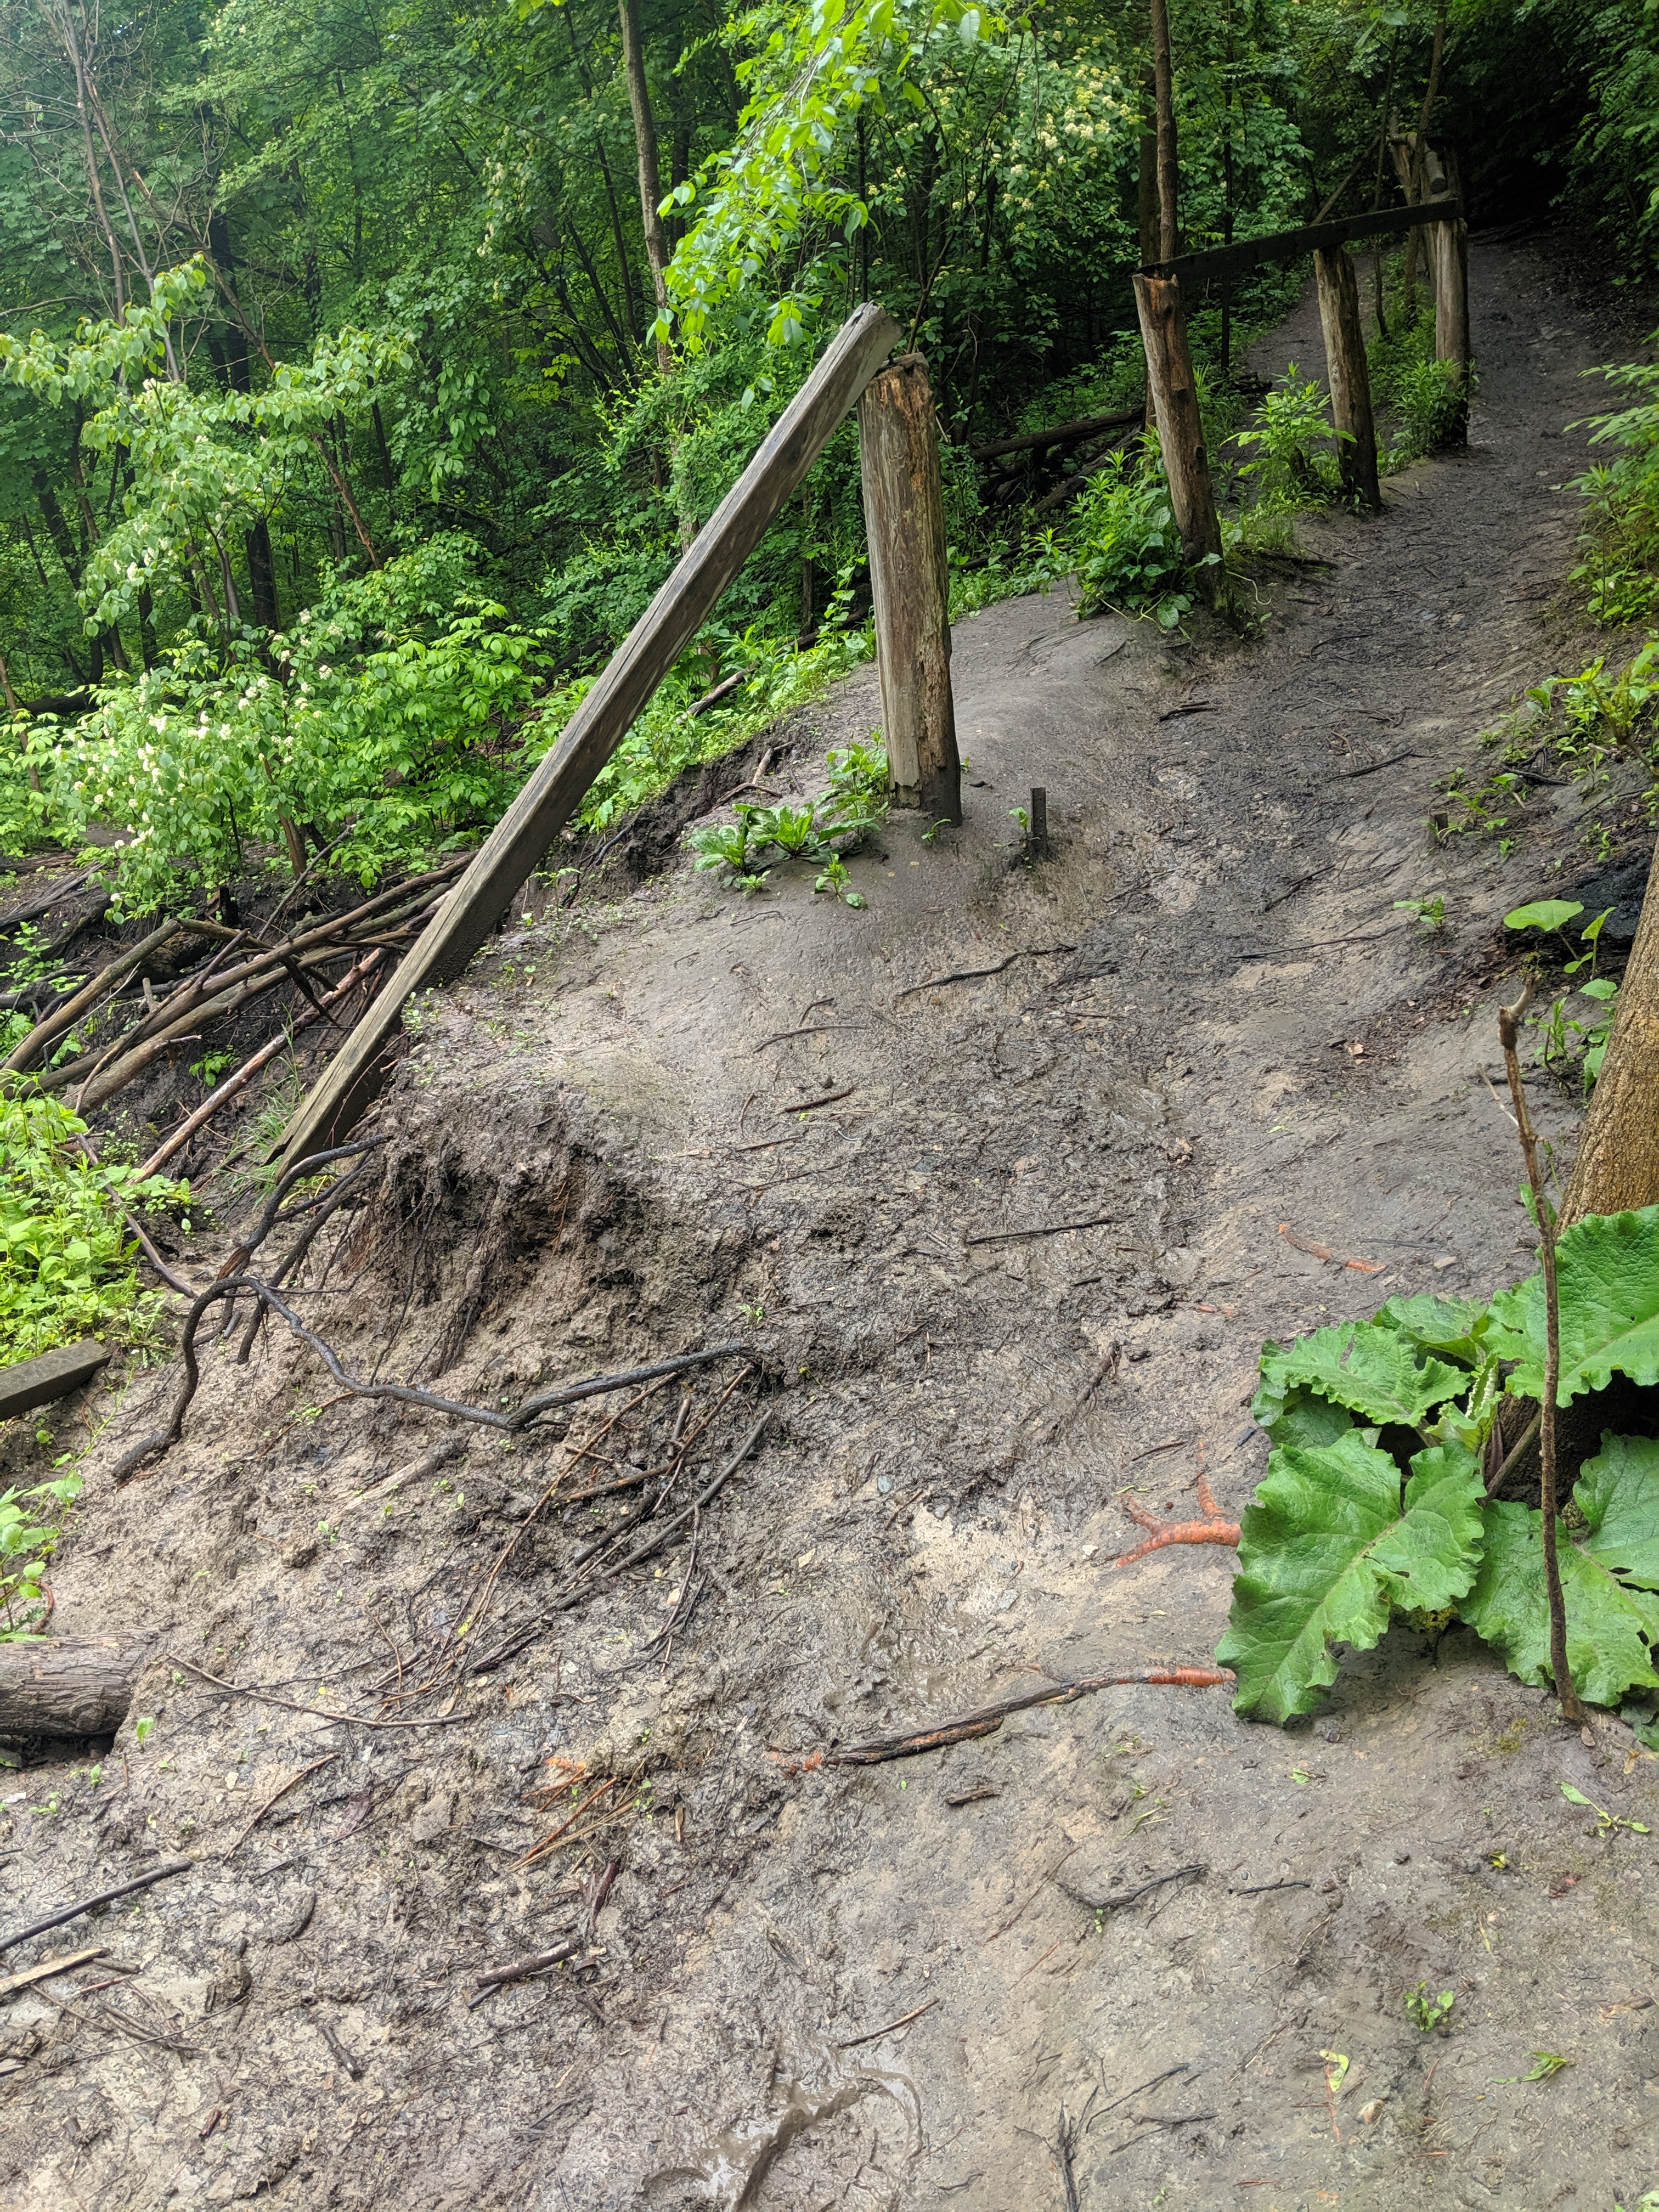 Toe erosion along the slope next to the outflanked channel has impacted a pedestrian trail and resulted in a public safety concern. Source: TRCA, 2019